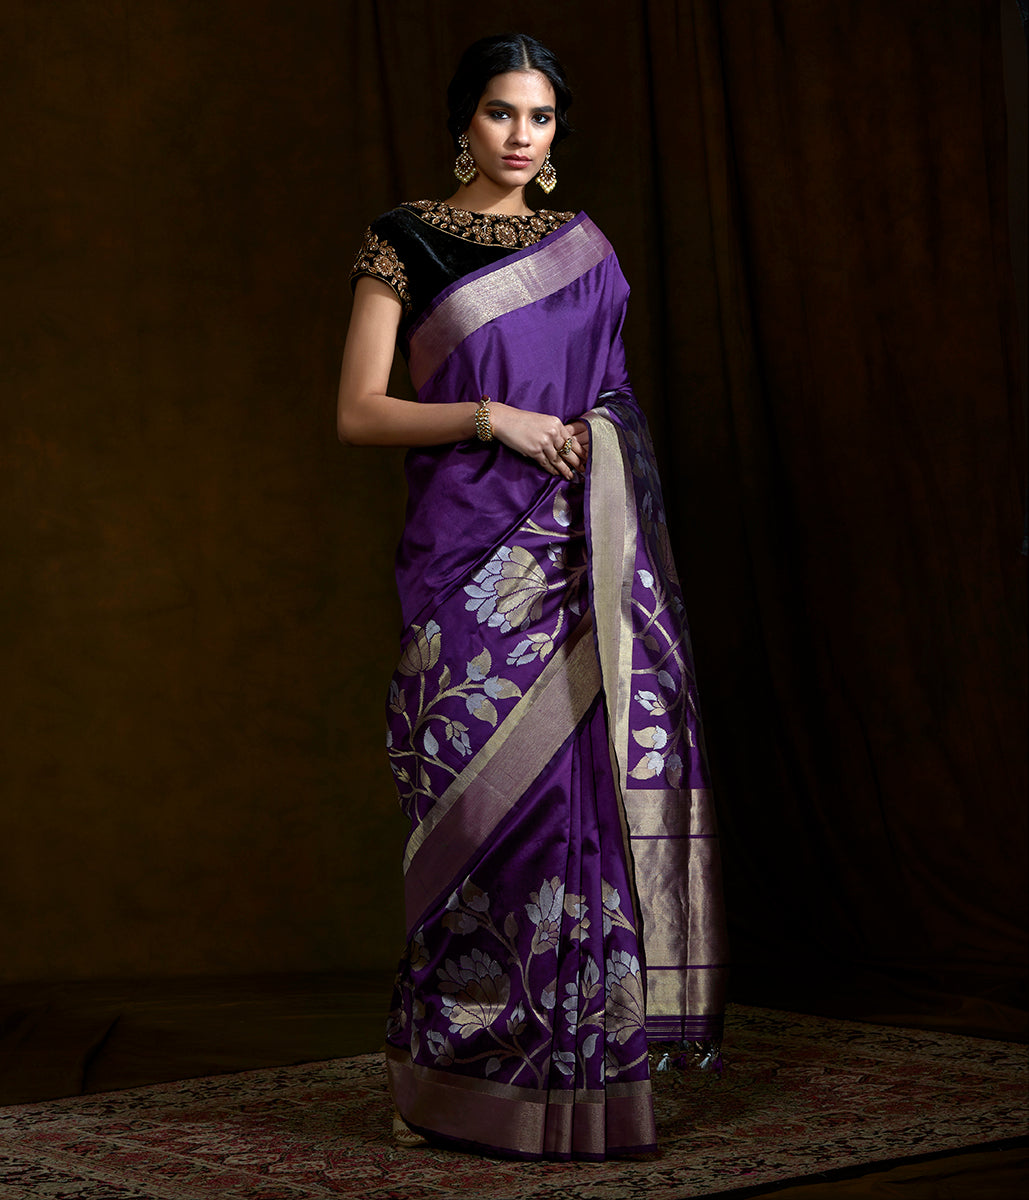 Handwoven dupion silk banarasi with floral borders woven in sona rupa zari